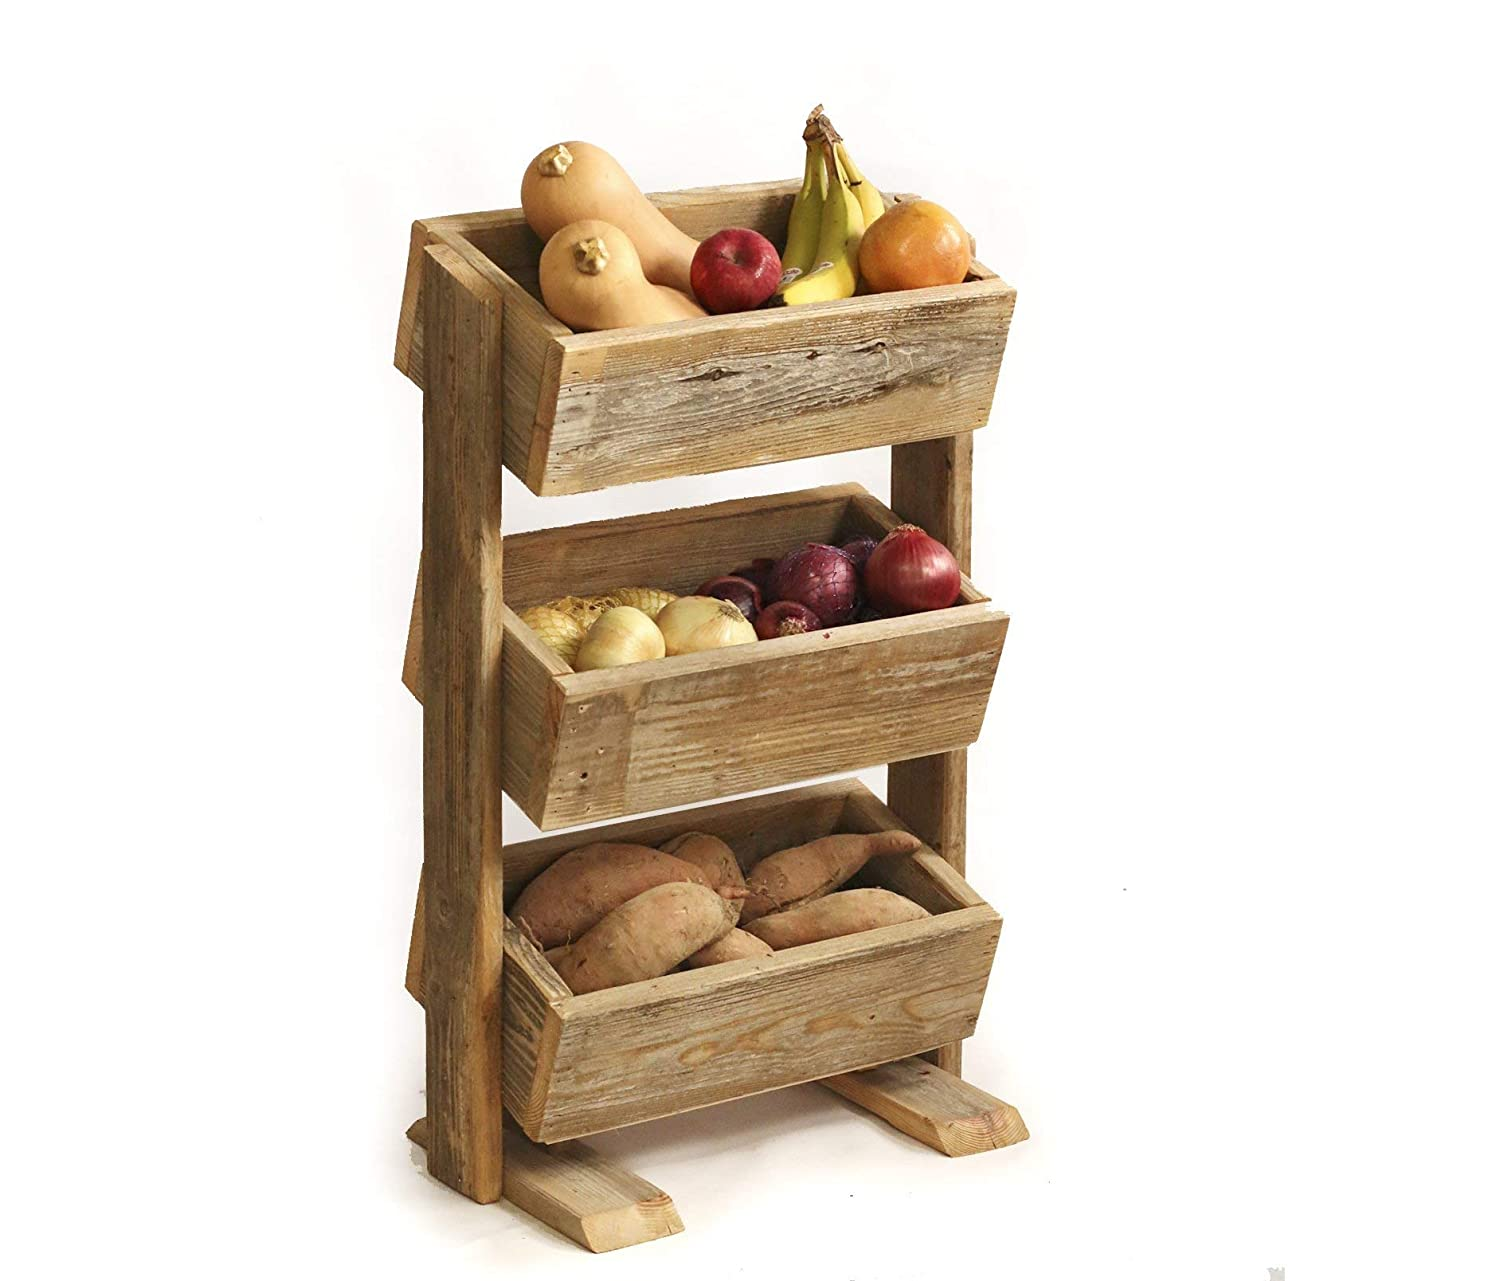 handmade wood decor fruit and veggie holder woodworking home Amazon.com